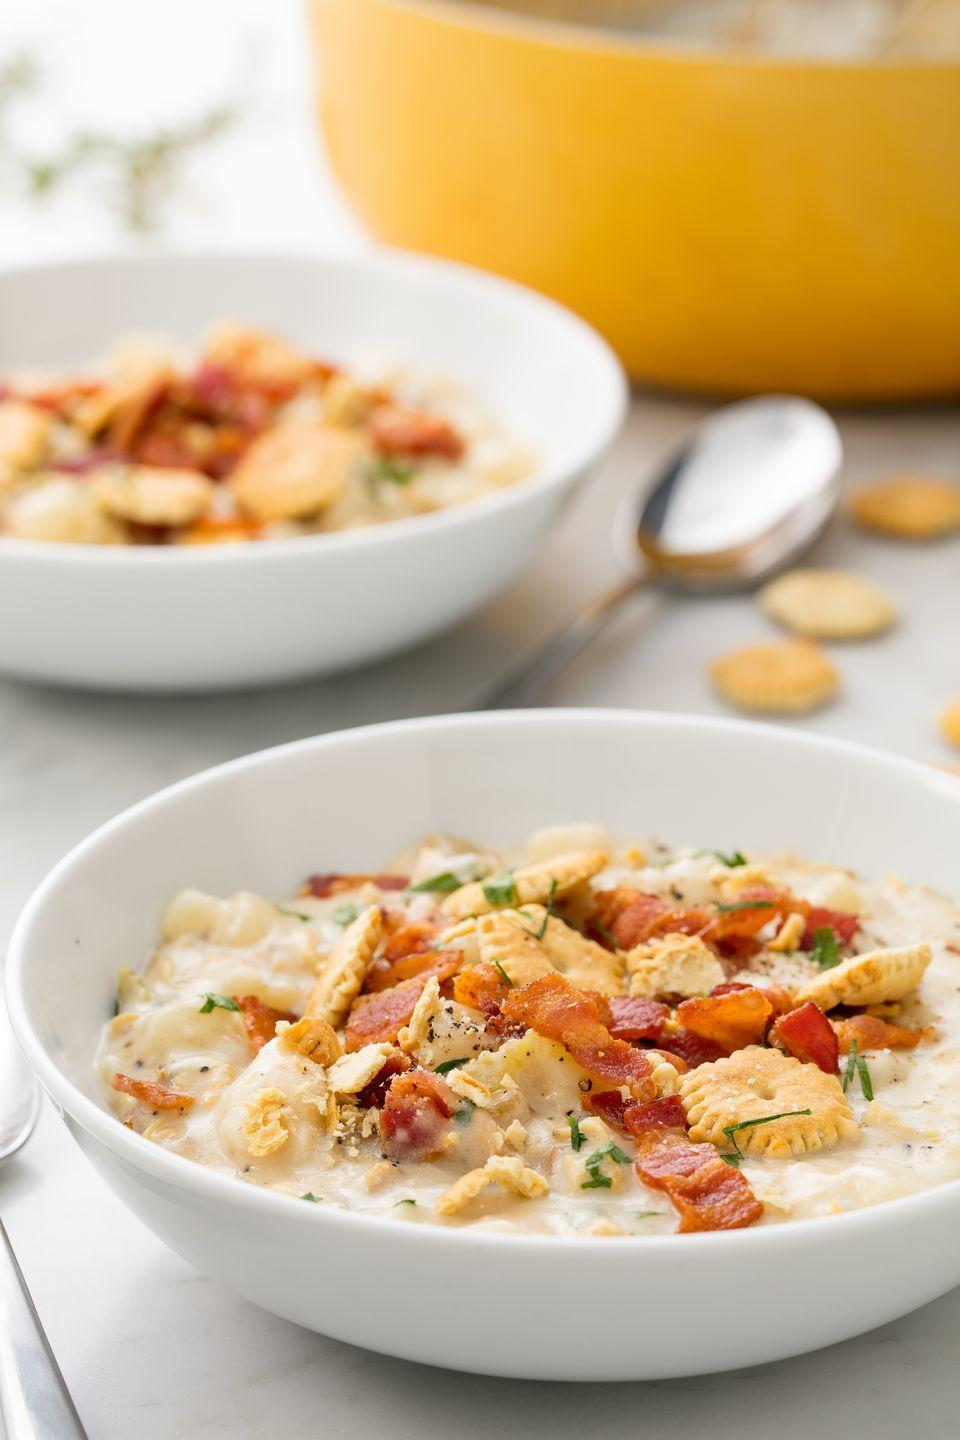 """<p>Pretend you're on Cape Cod, wherever you actually are.</p><p>Get the recipe from <a href=""""https://www.delish.com/cooking/recipe-ideas/recipes/a54466/easy-new-england-clam-chowder-recipe/"""" rel=""""nofollow noopener"""" target=""""_blank"""" data-ylk=""""slk:Delish."""" class=""""link rapid-noclick-resp"""">Delish.</a></p>"""